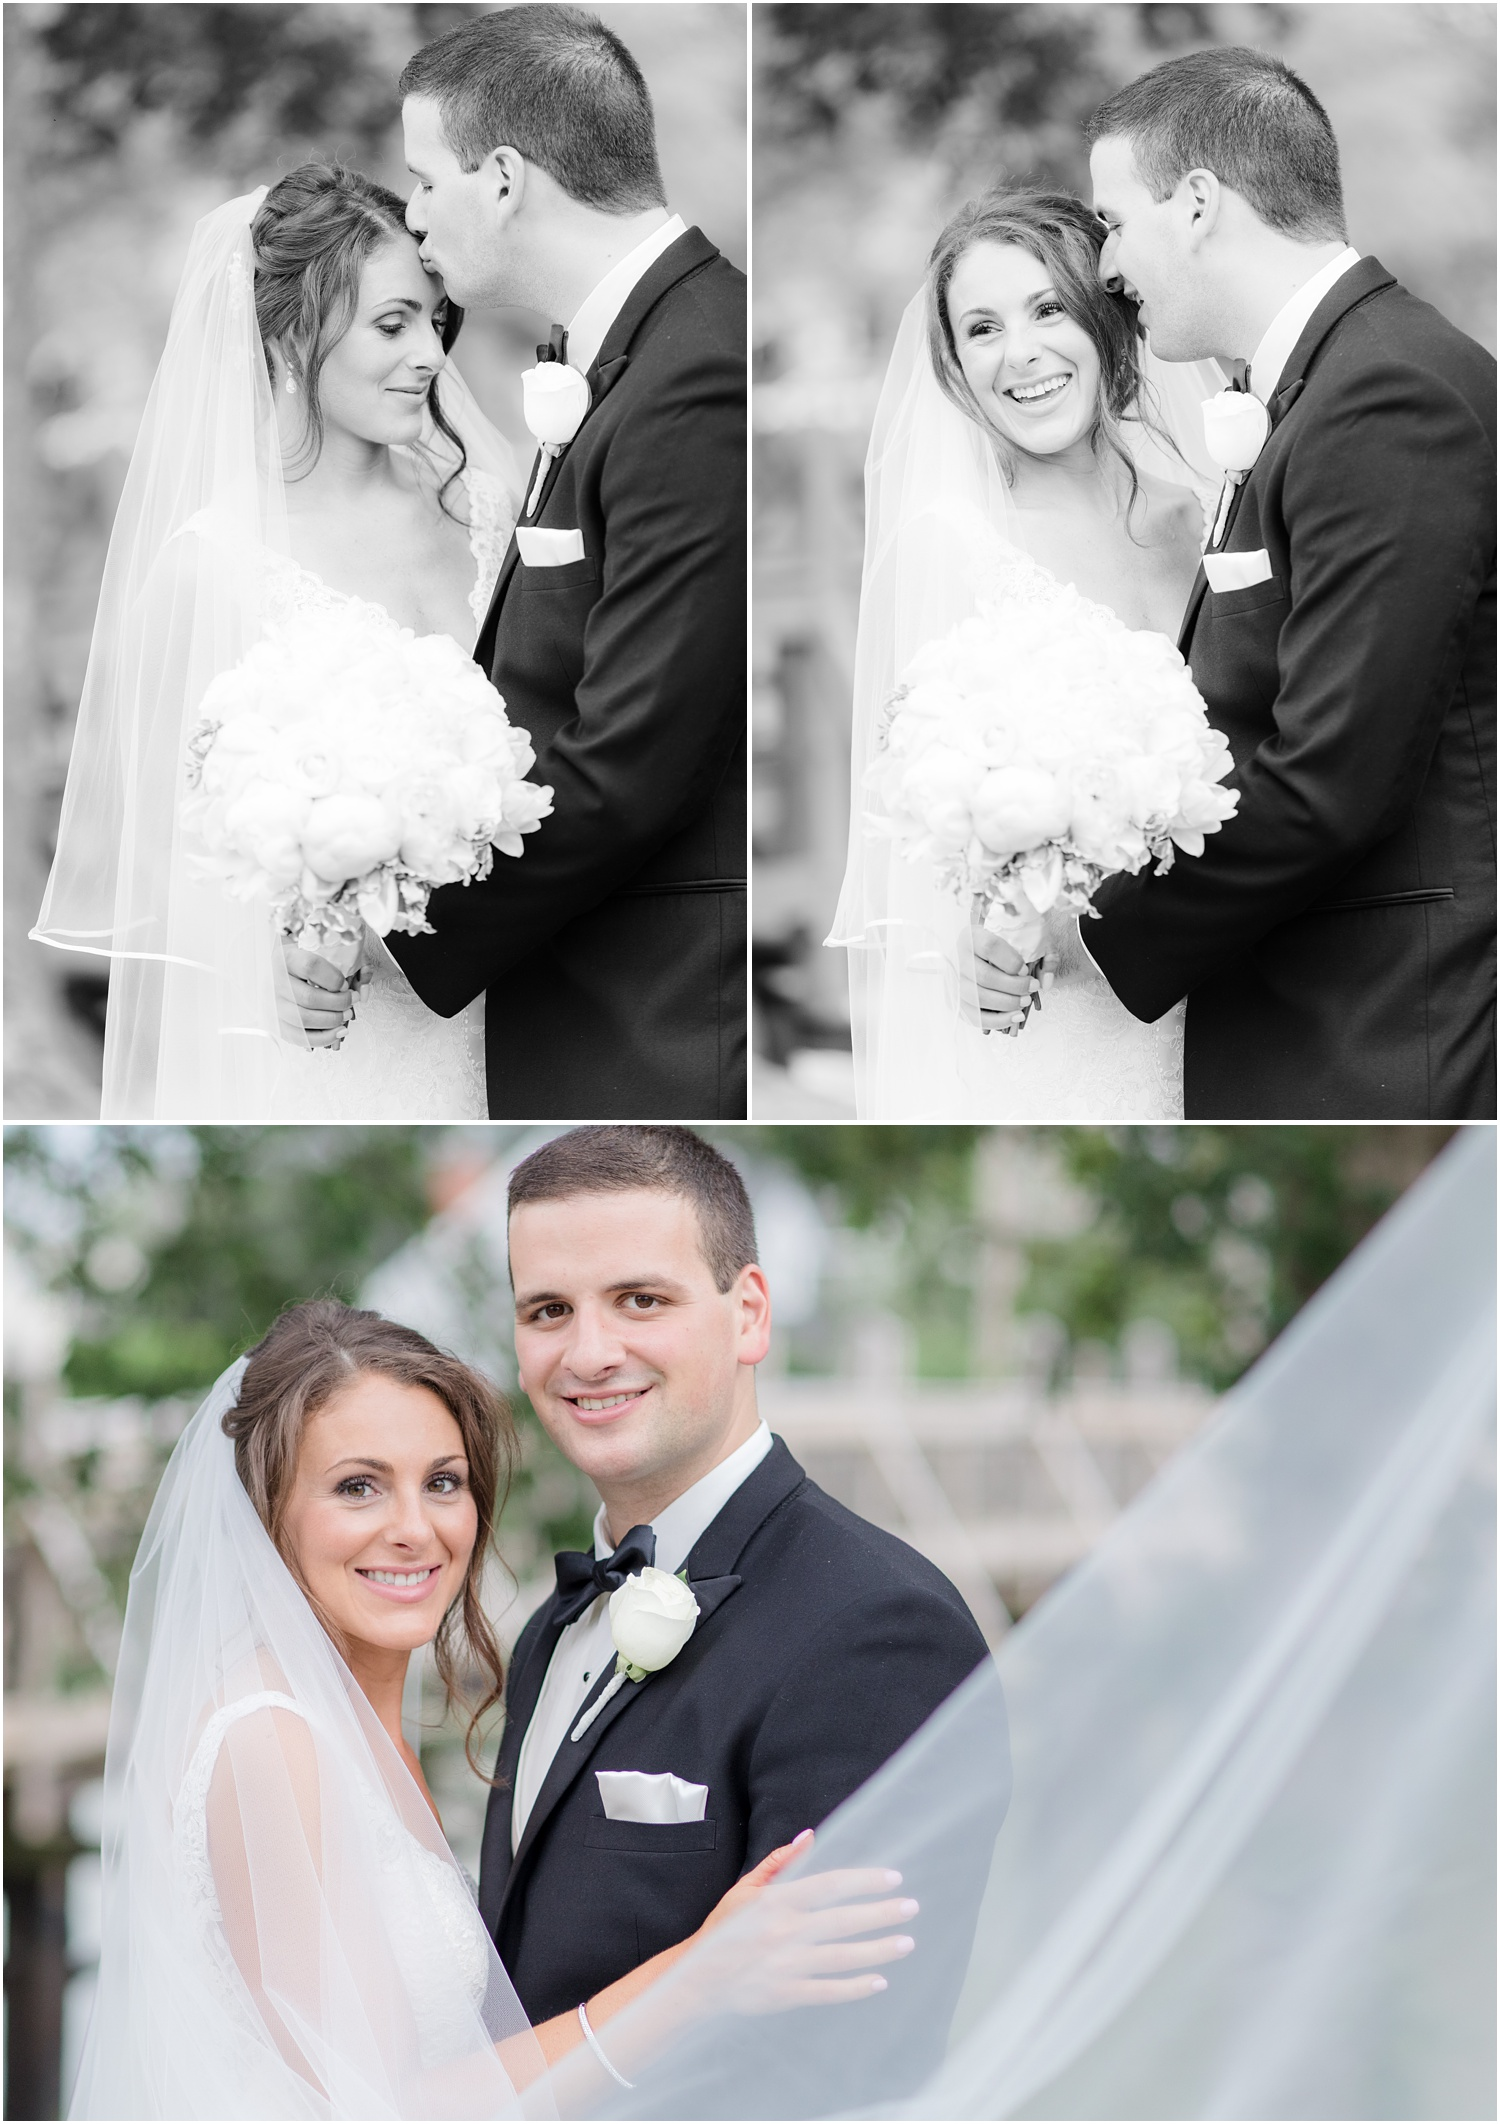 Classic elegant bride and groom portraits in the park.  Spring Lake, NJ.